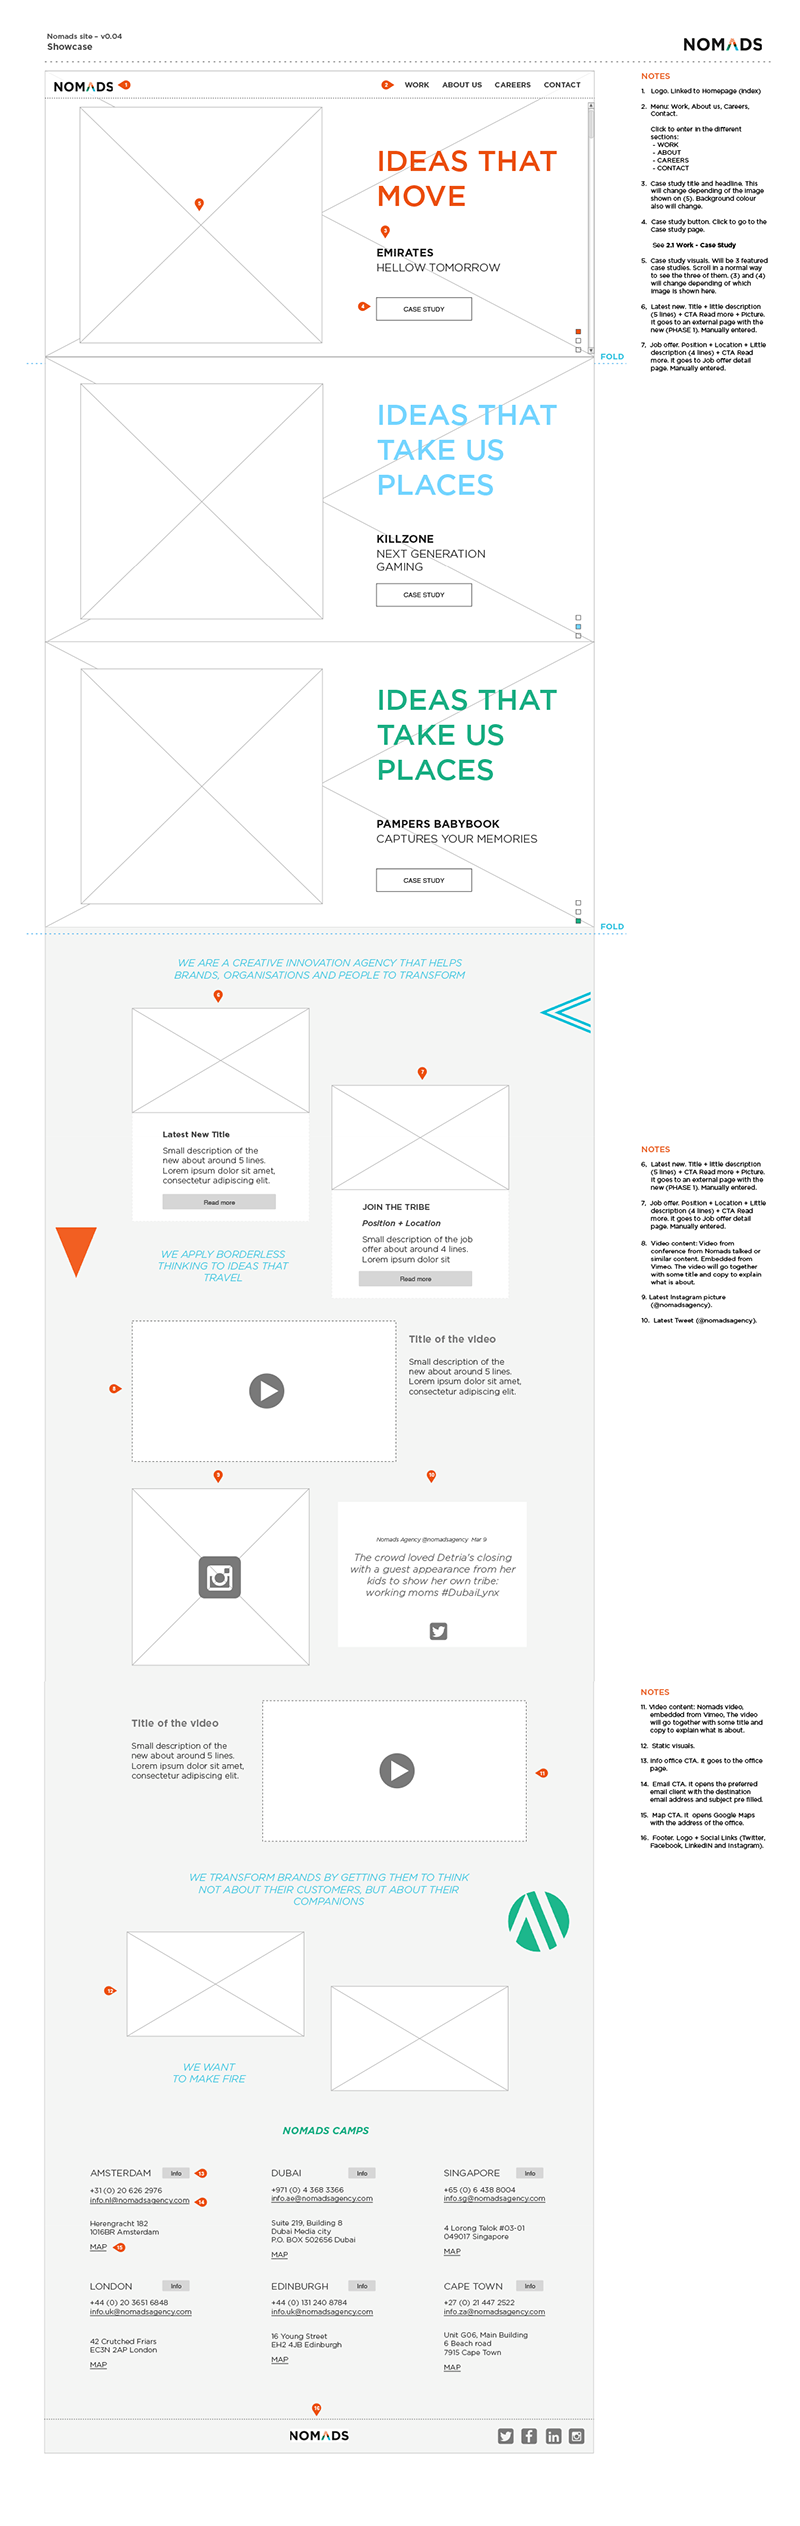 Nomads Agency wireframes